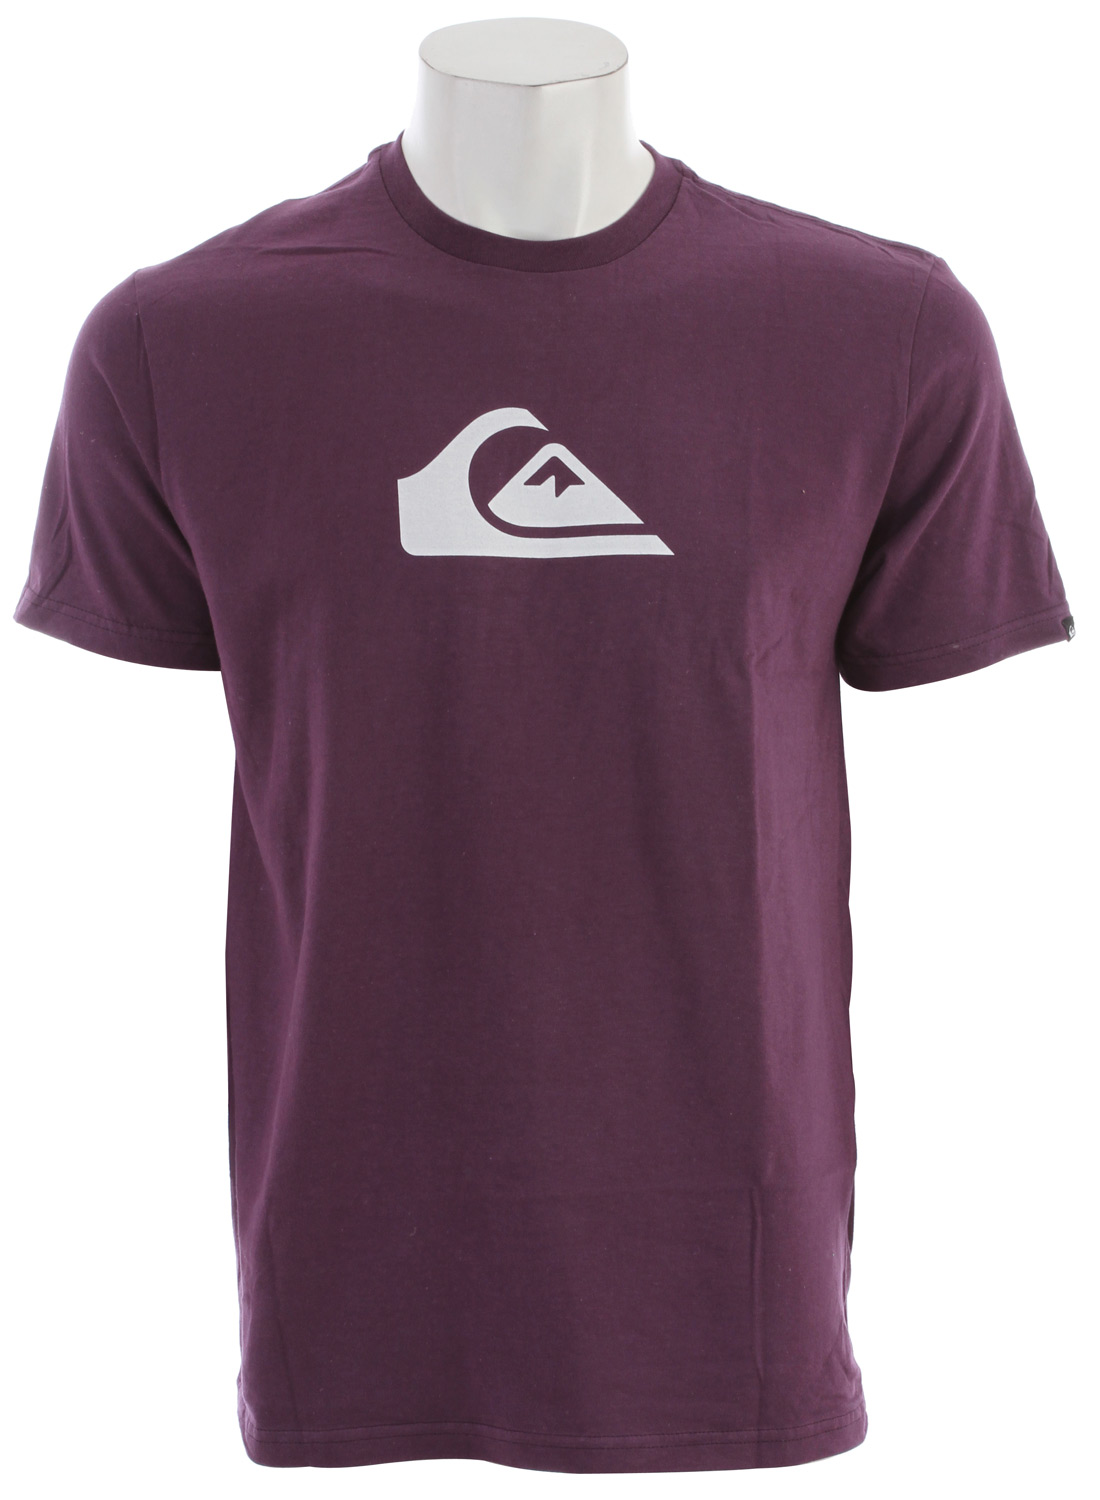 Surf The Mountain Wave classic tee says one thing asnd one thing well - you like mountain and waves.Key Features of the Quiksilver Mountain Wave T-Shirt: 22 Singles ringspun jersey regular fit Solids: 100% Cotton Heathers: 50% Cotton/50% Polyester Machine Wash imported - $20.00